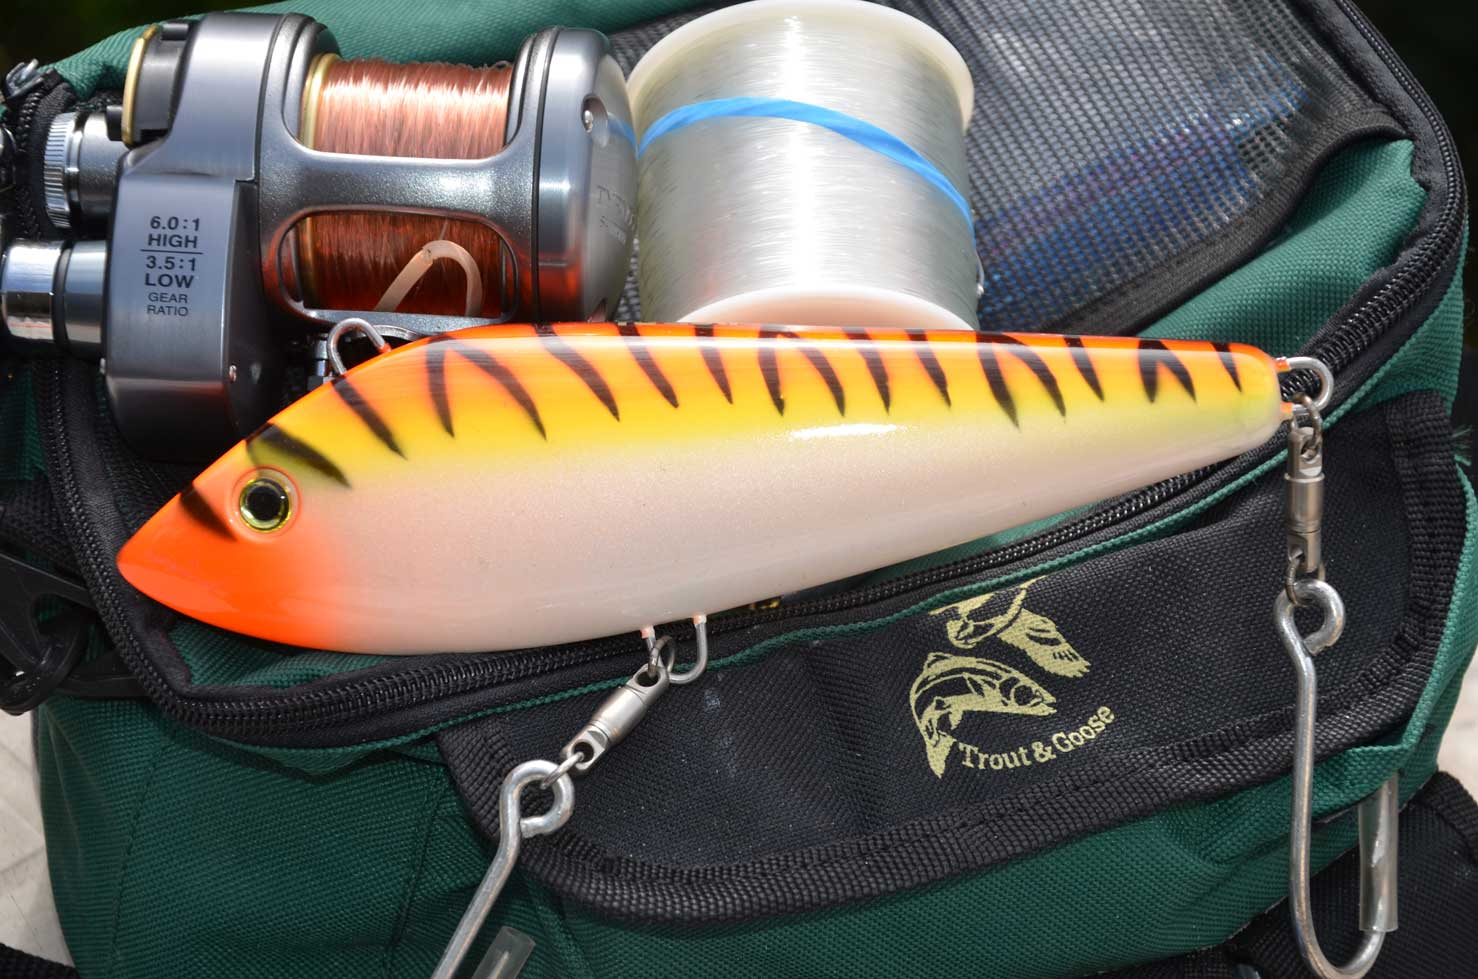 Trolling Lures - Engineering Sciences & Technology Inc